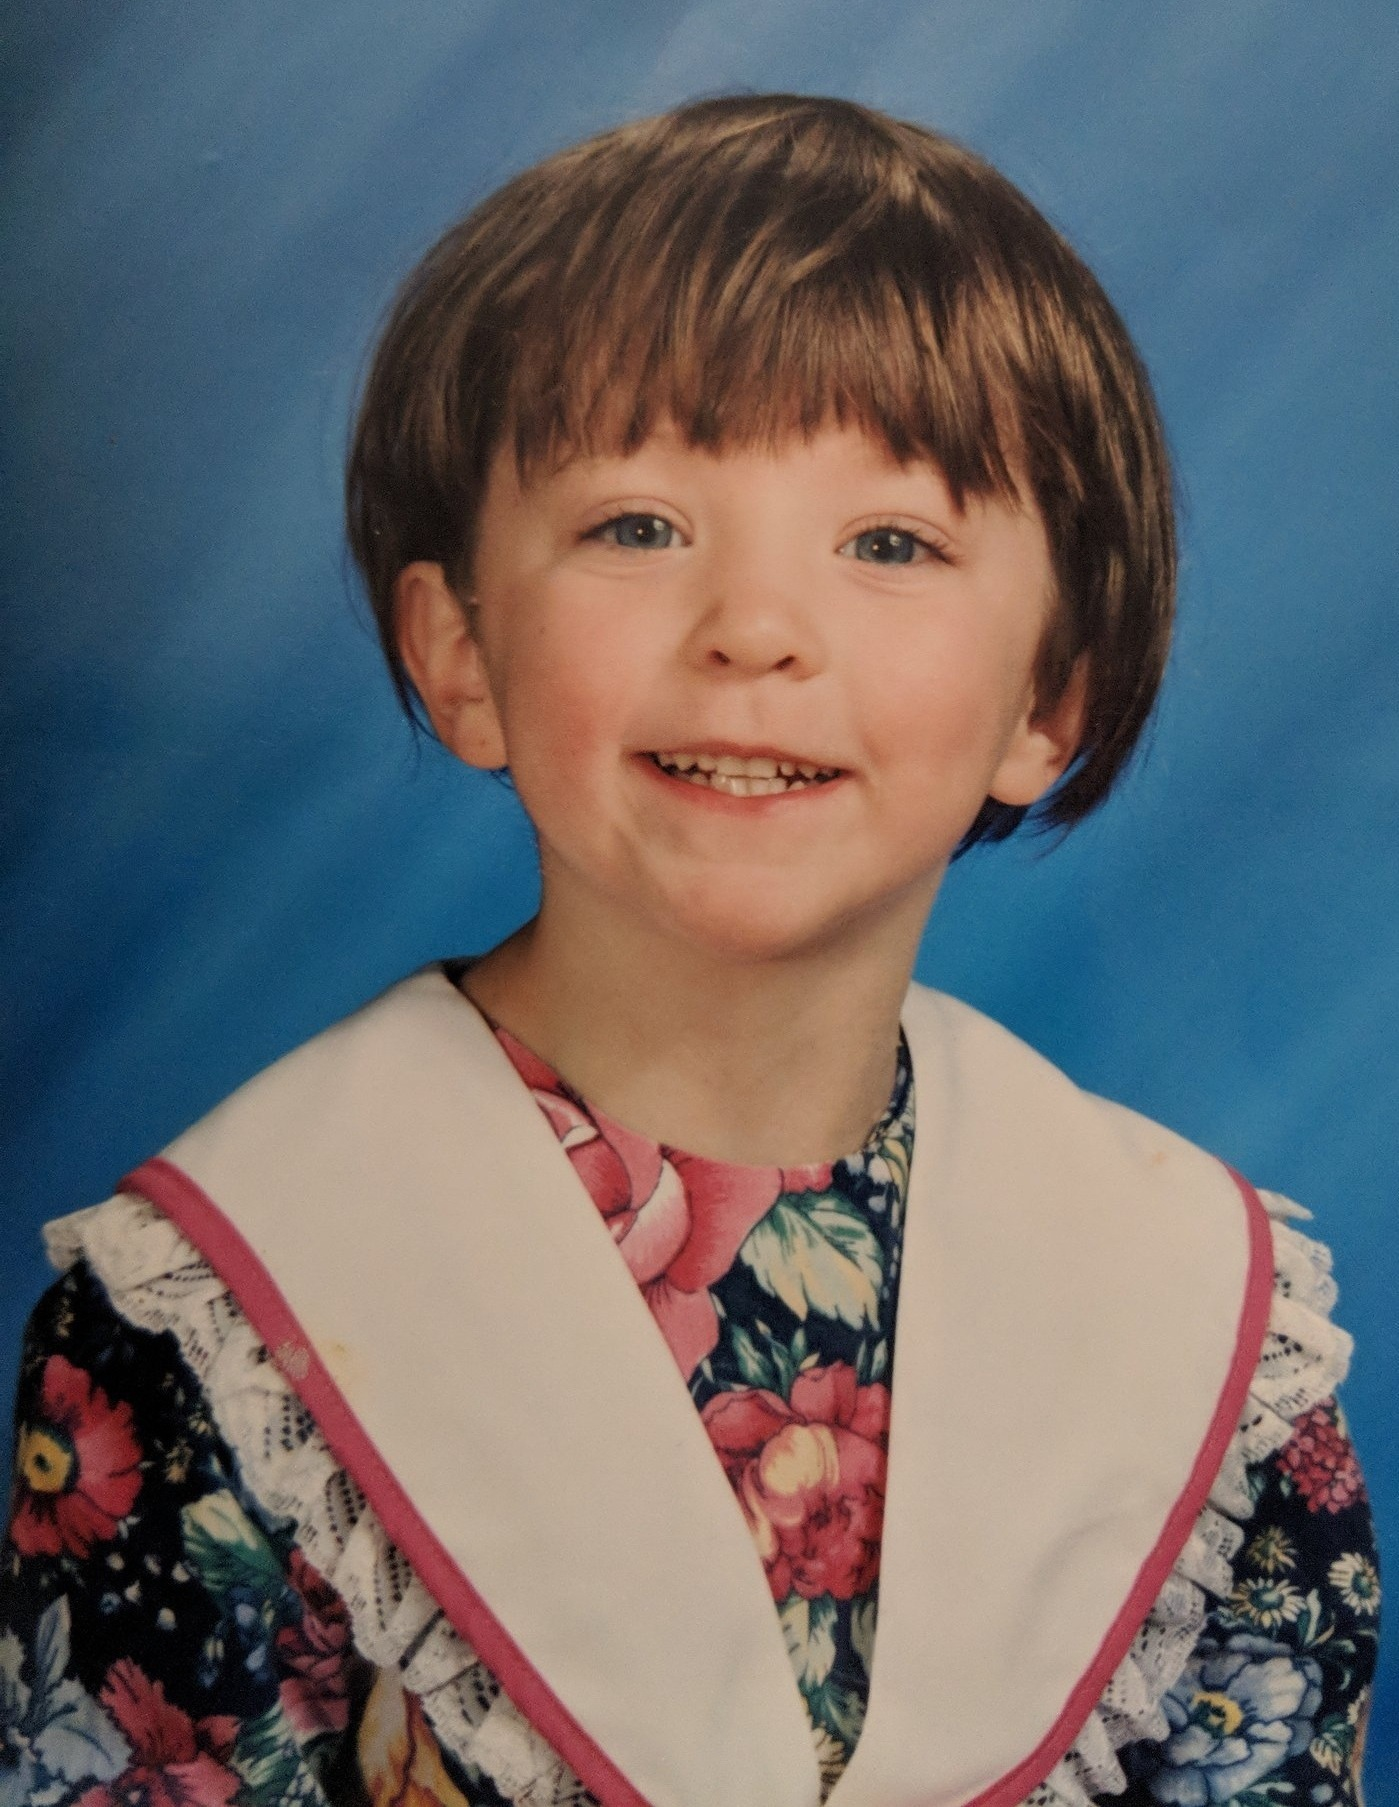 A photo of Emily while she was in kindergarten, pre-abuse. Photo: Emily